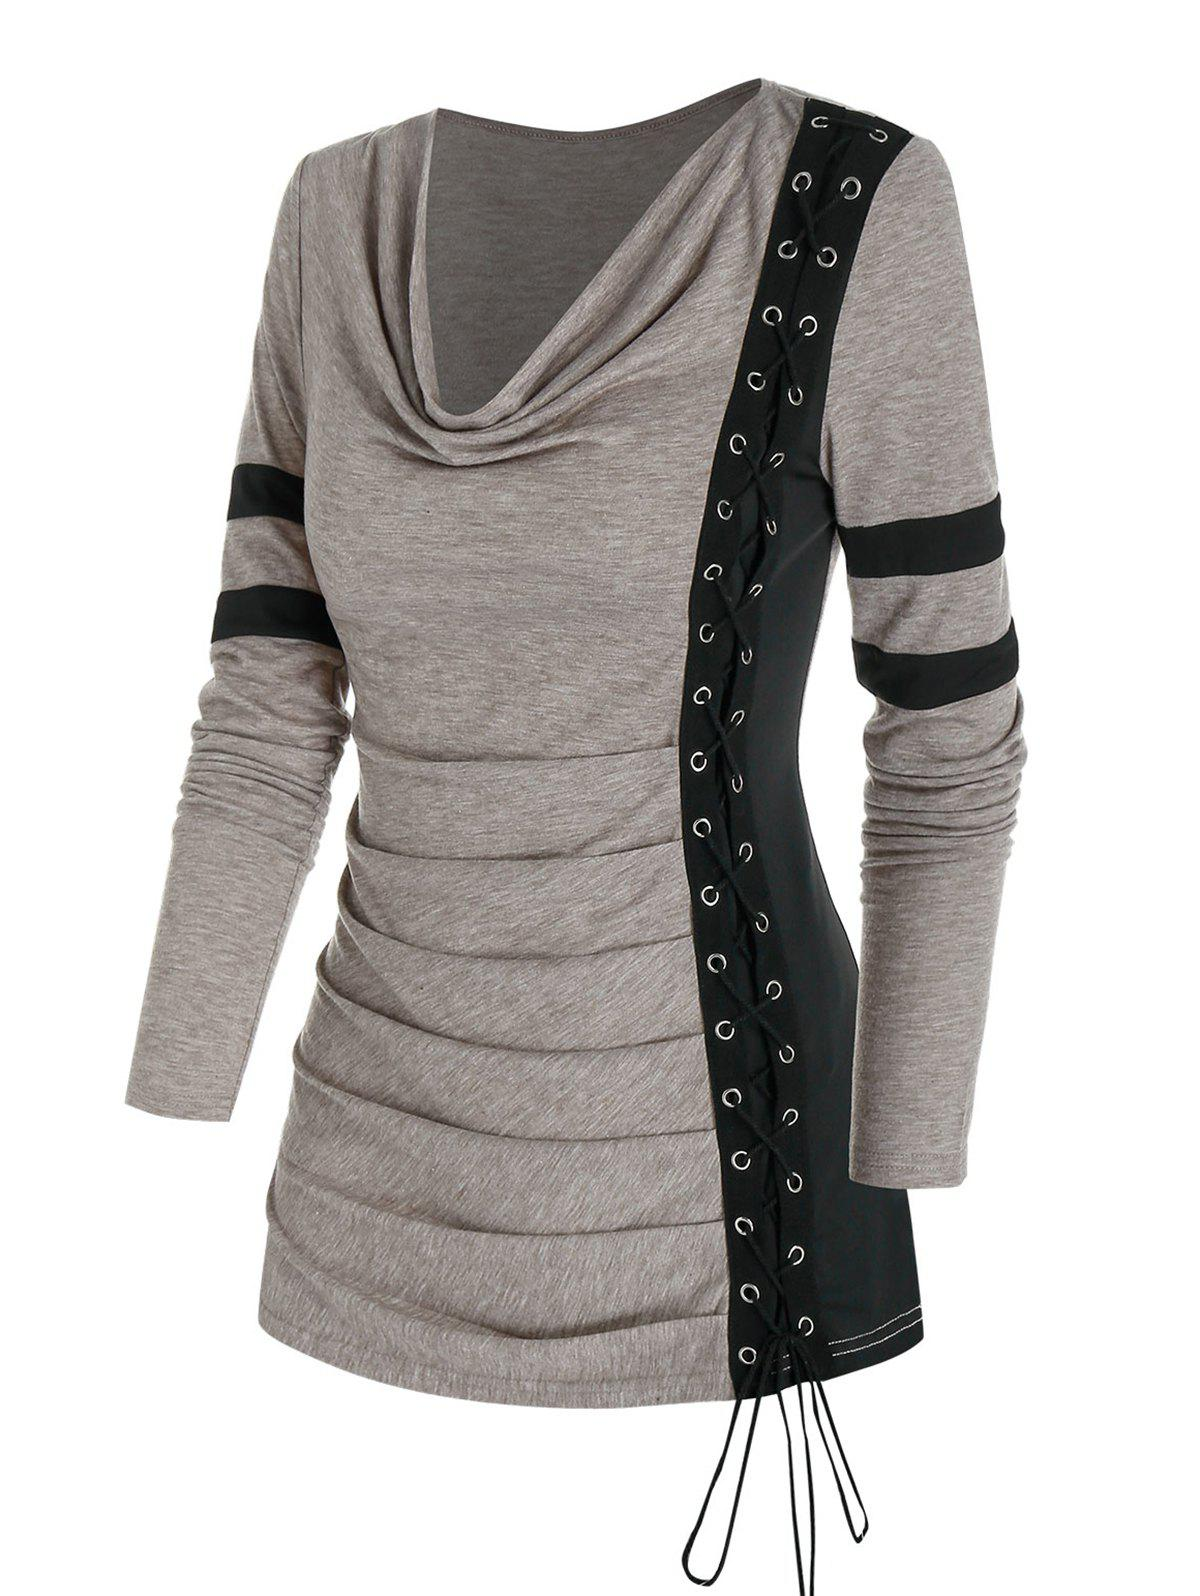 Cowl Neck Ruched Lace Up Eyelet Tee - LIGHT COFFEE M